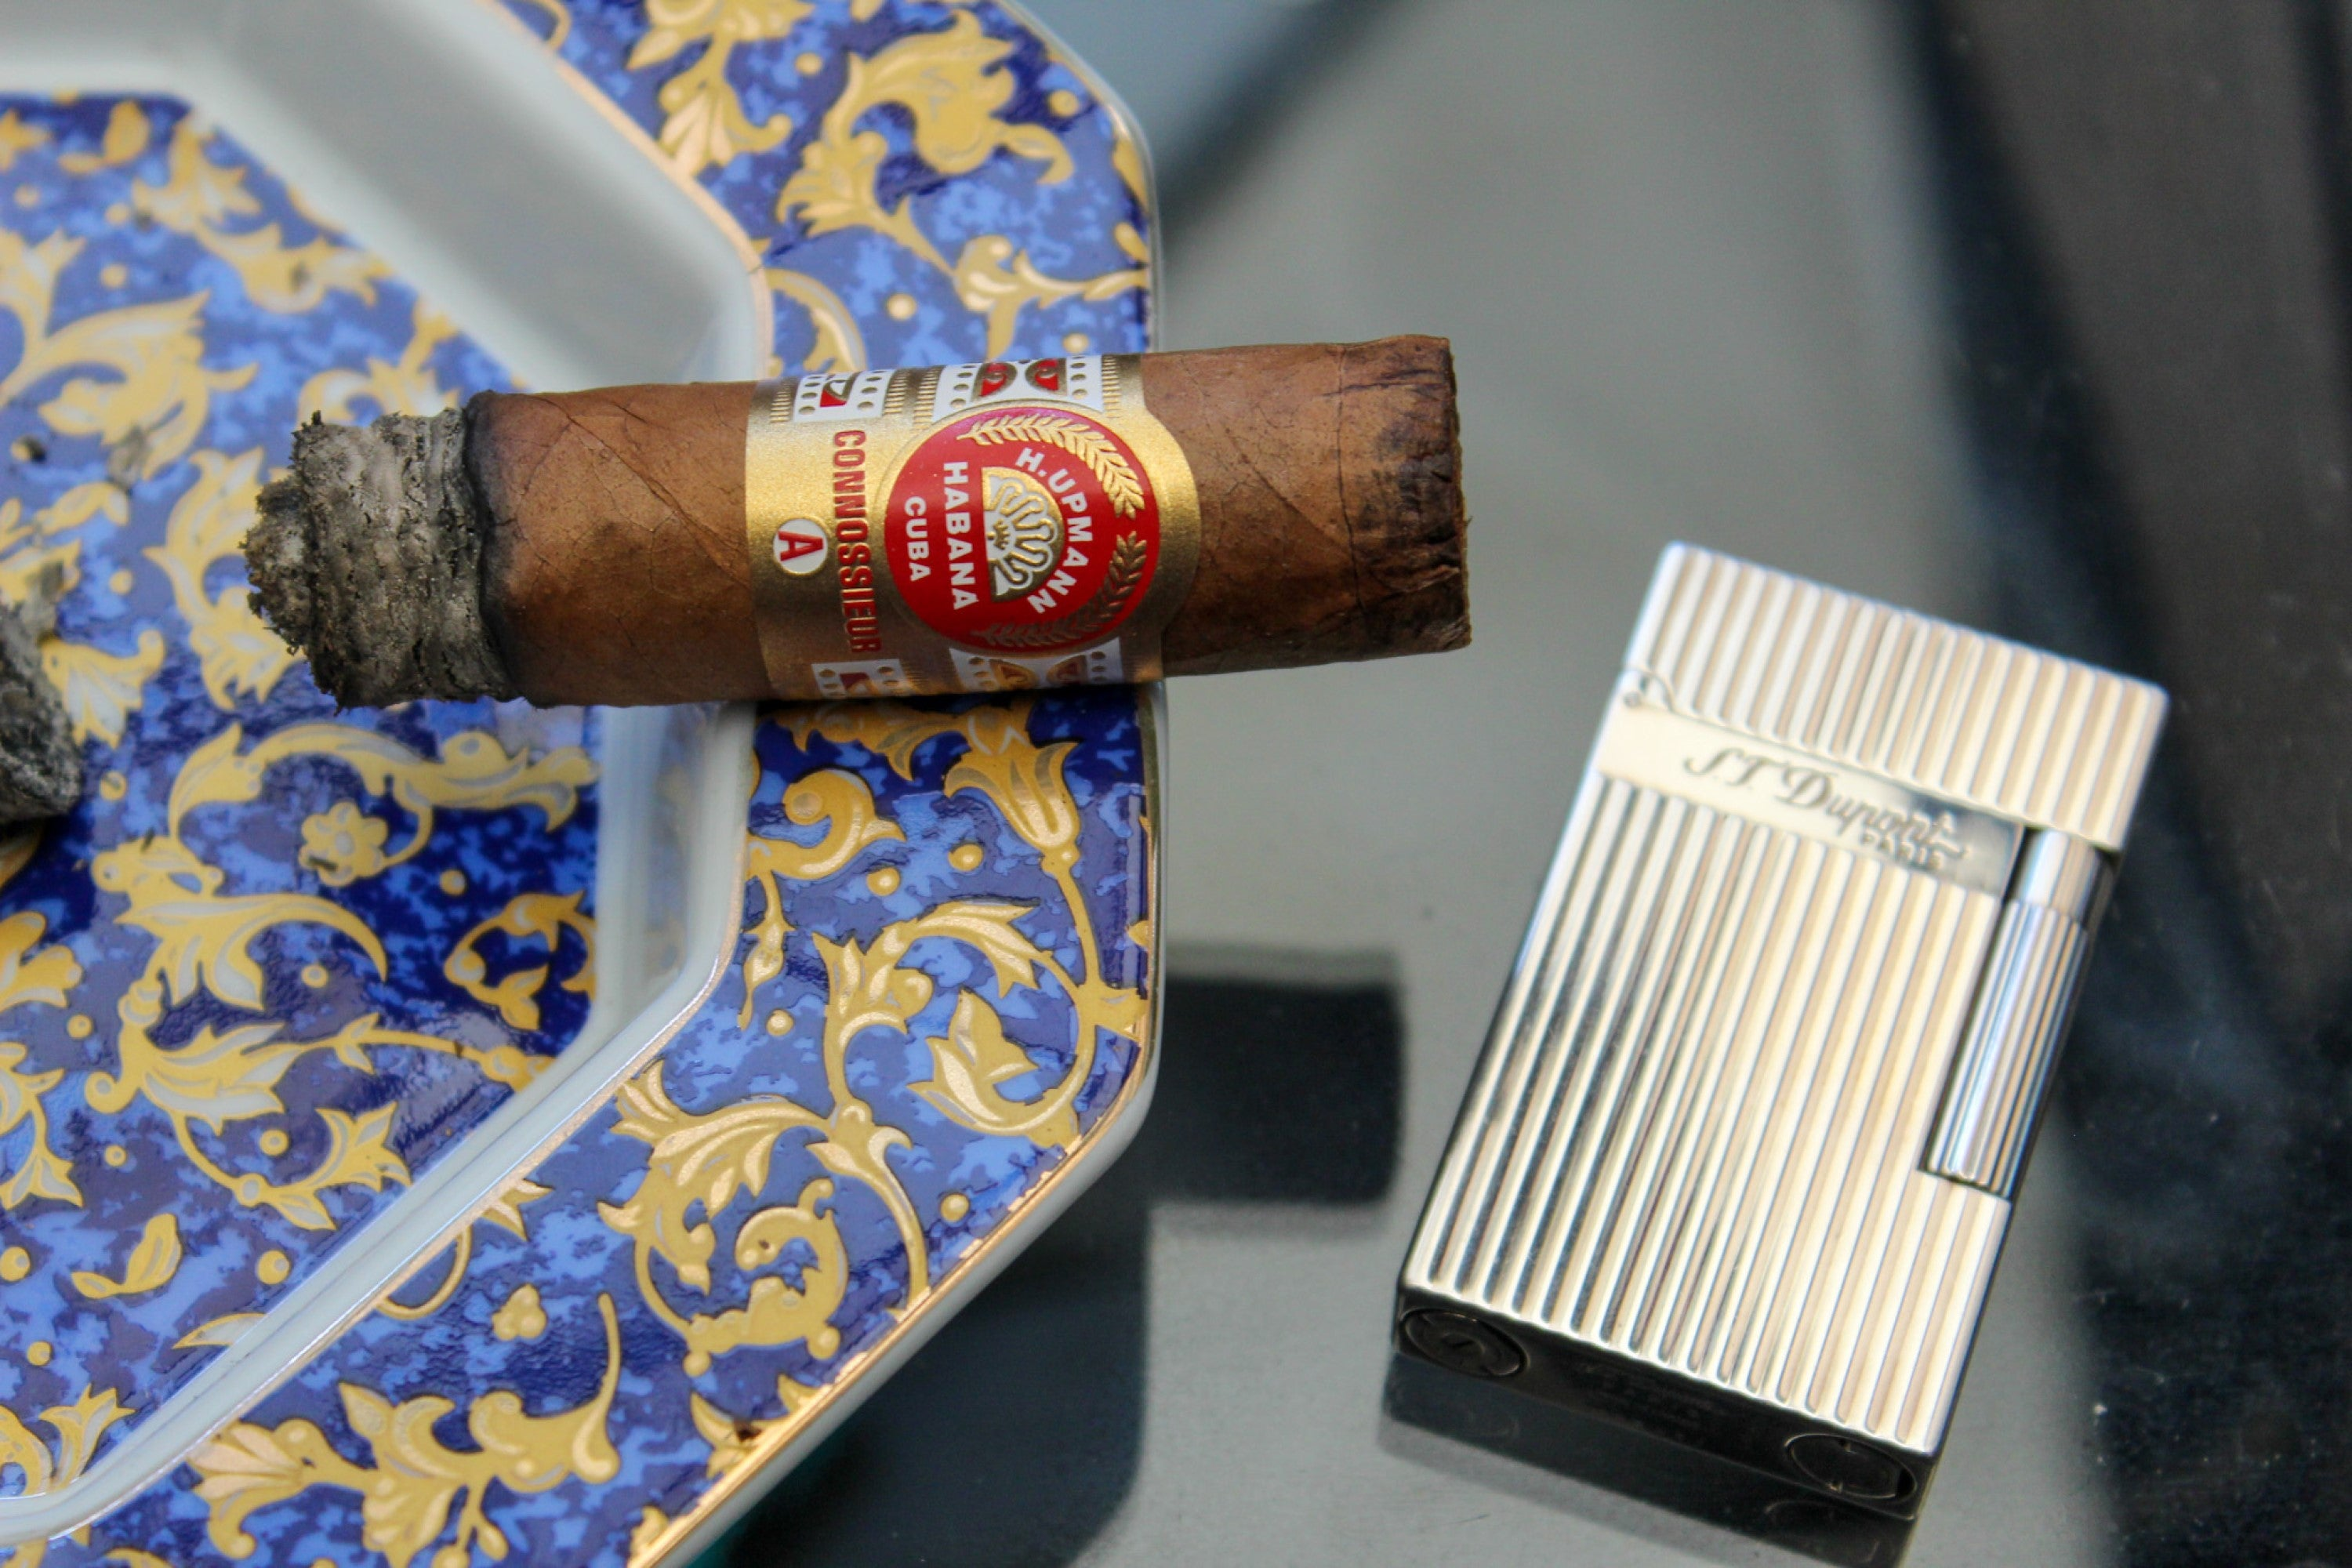 A quality cigar deserves a quality lighter; the ST Dupont Ligne 2 pairs with the H Upmann Connossieur A